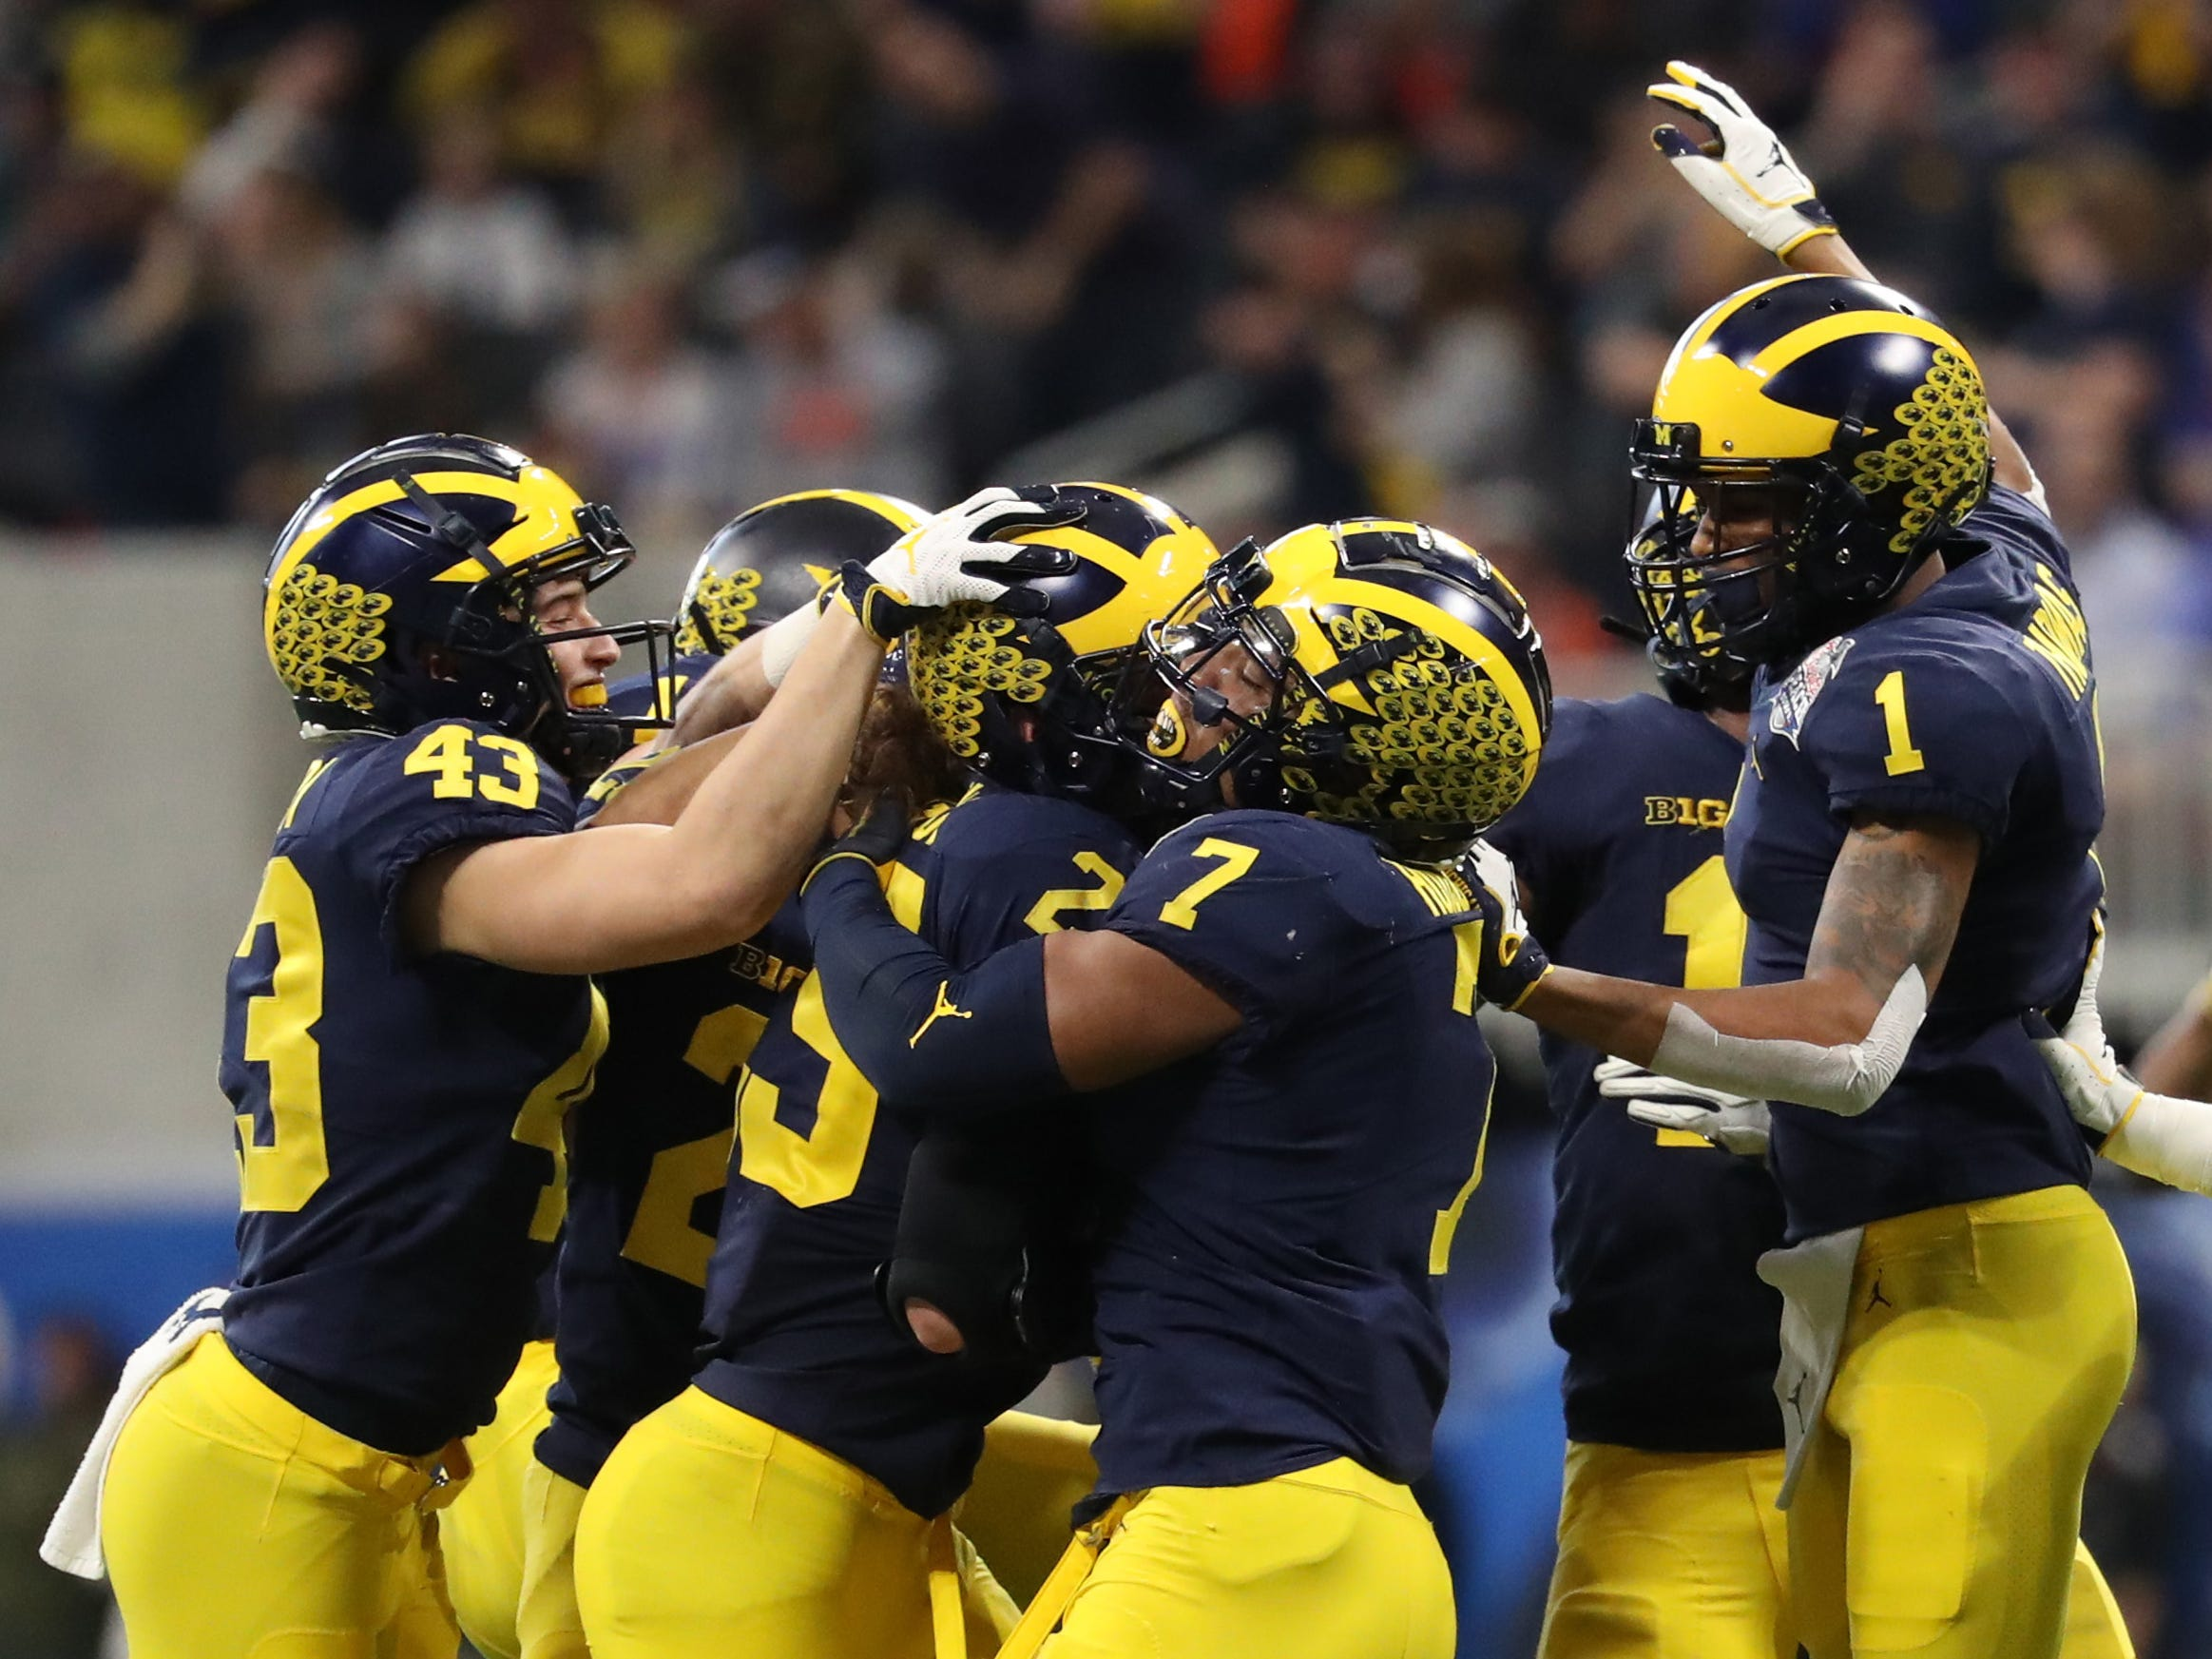 Michigan celebrate after linebacker Jordan Glasgow (29) recovers a blocked punt by Florida punter Tommy Townsend (not pictured) in the second quarter during the Peach Bowl on Saturday, Dec. 29, 2018, in Atlanta.